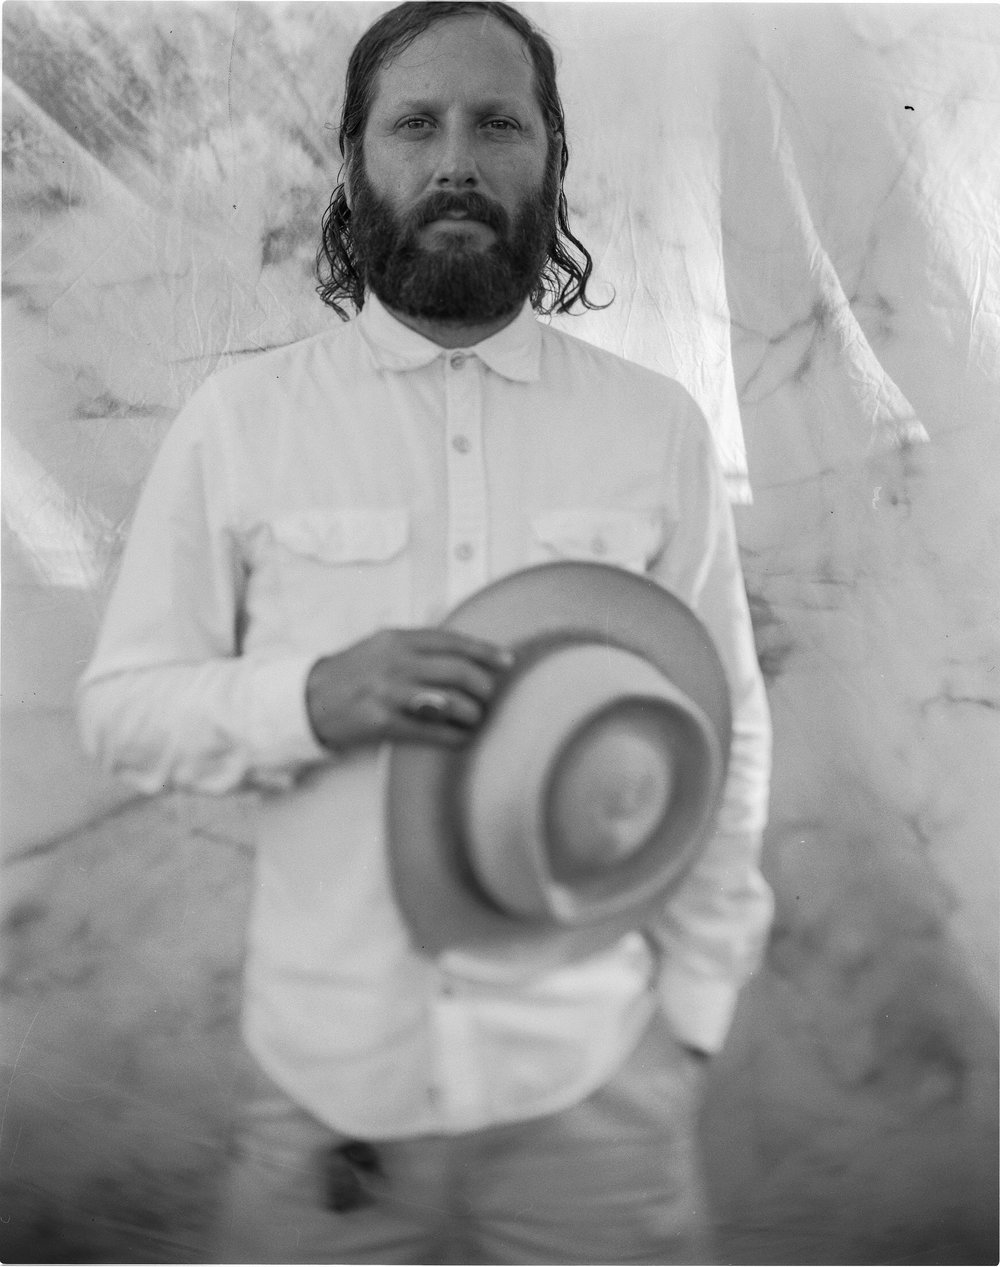 Justin Carpenter - Justin Carpenter is a Southern California based hatter who dates his family history back to the 1850s in Oakland and the 1700s in Los Angeles. This family history provides part of the context which inspires his hand shaped